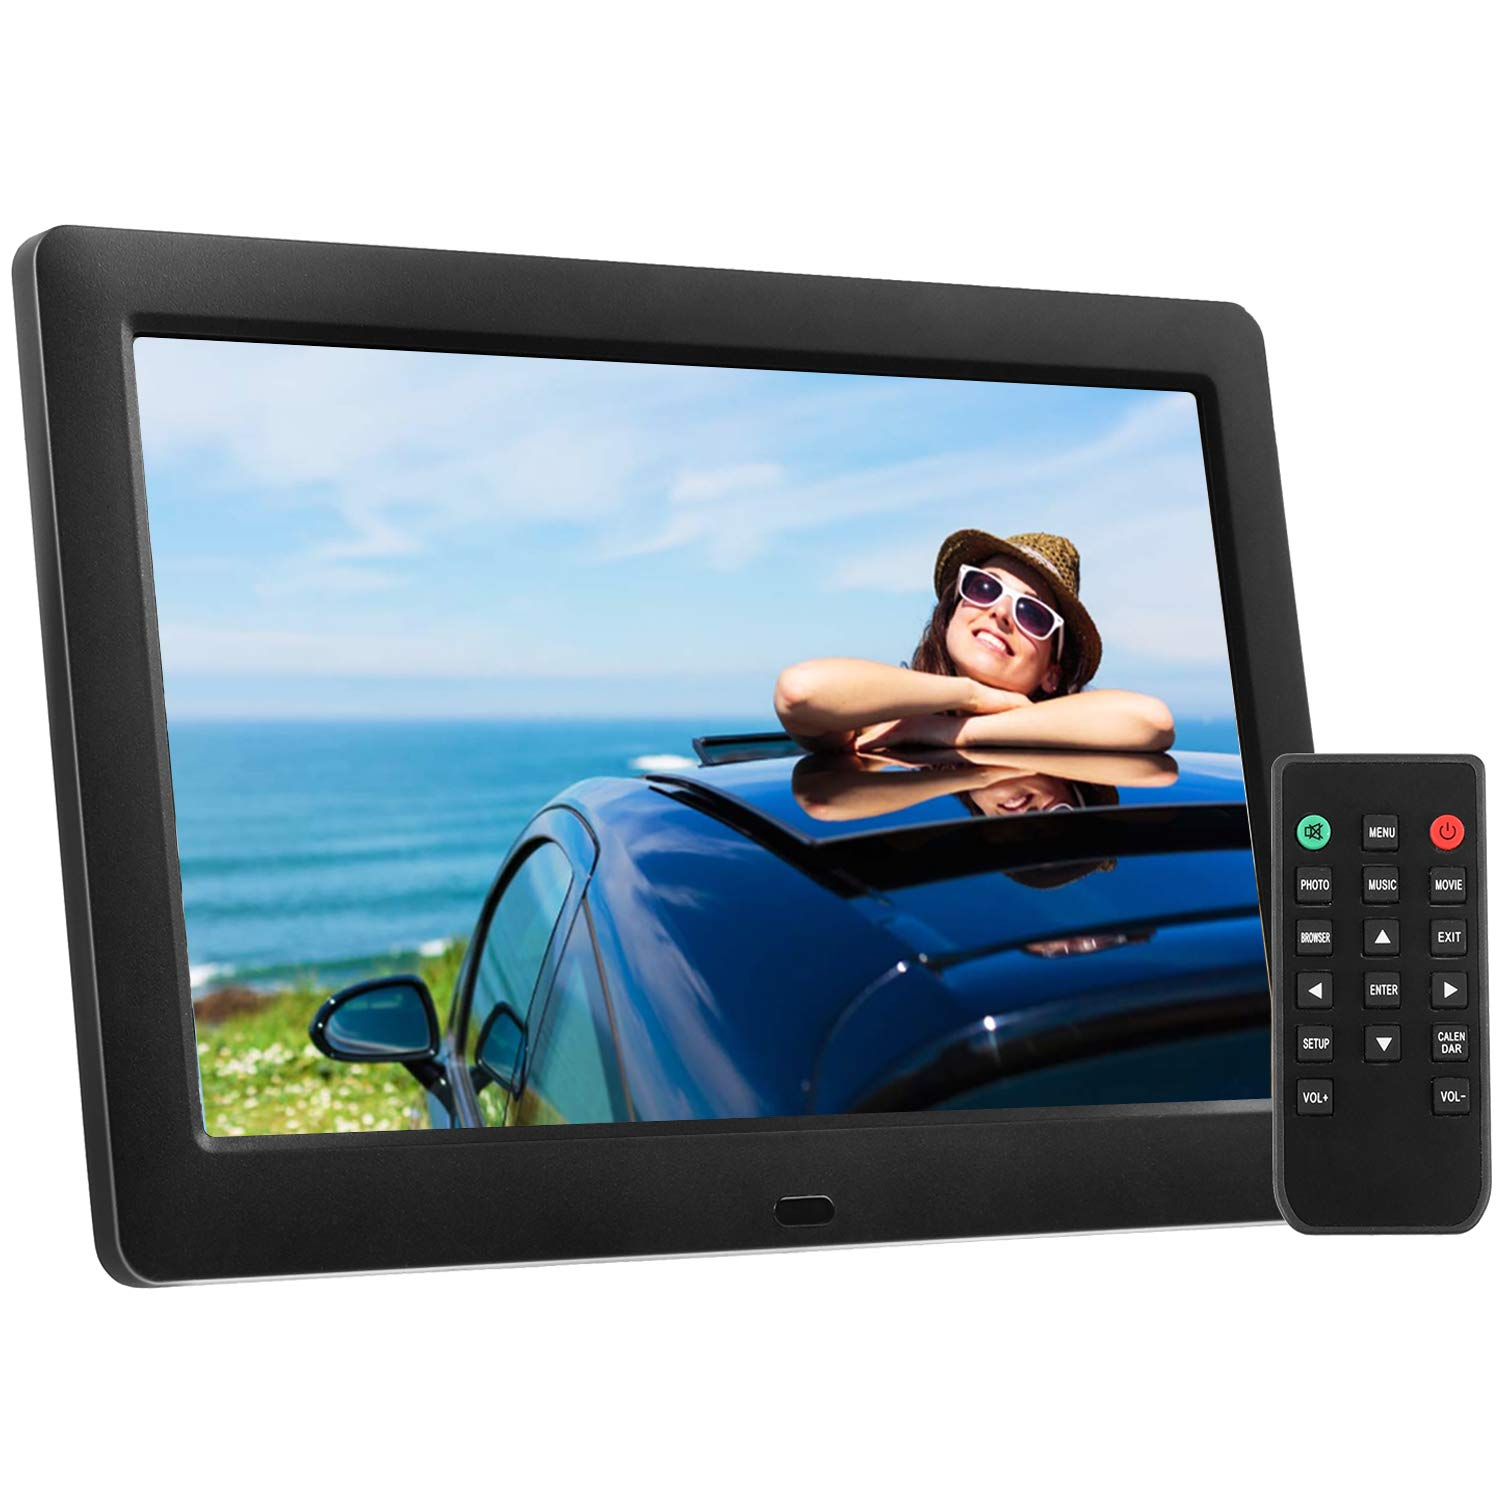 Digital Picture Frame 8 Inch Electronic Photo Frame & High Resolution 1280 x 720 IPS LCD Screen - Calendar/Clock Function, MP3/ Photo/Video Player with Remote Control